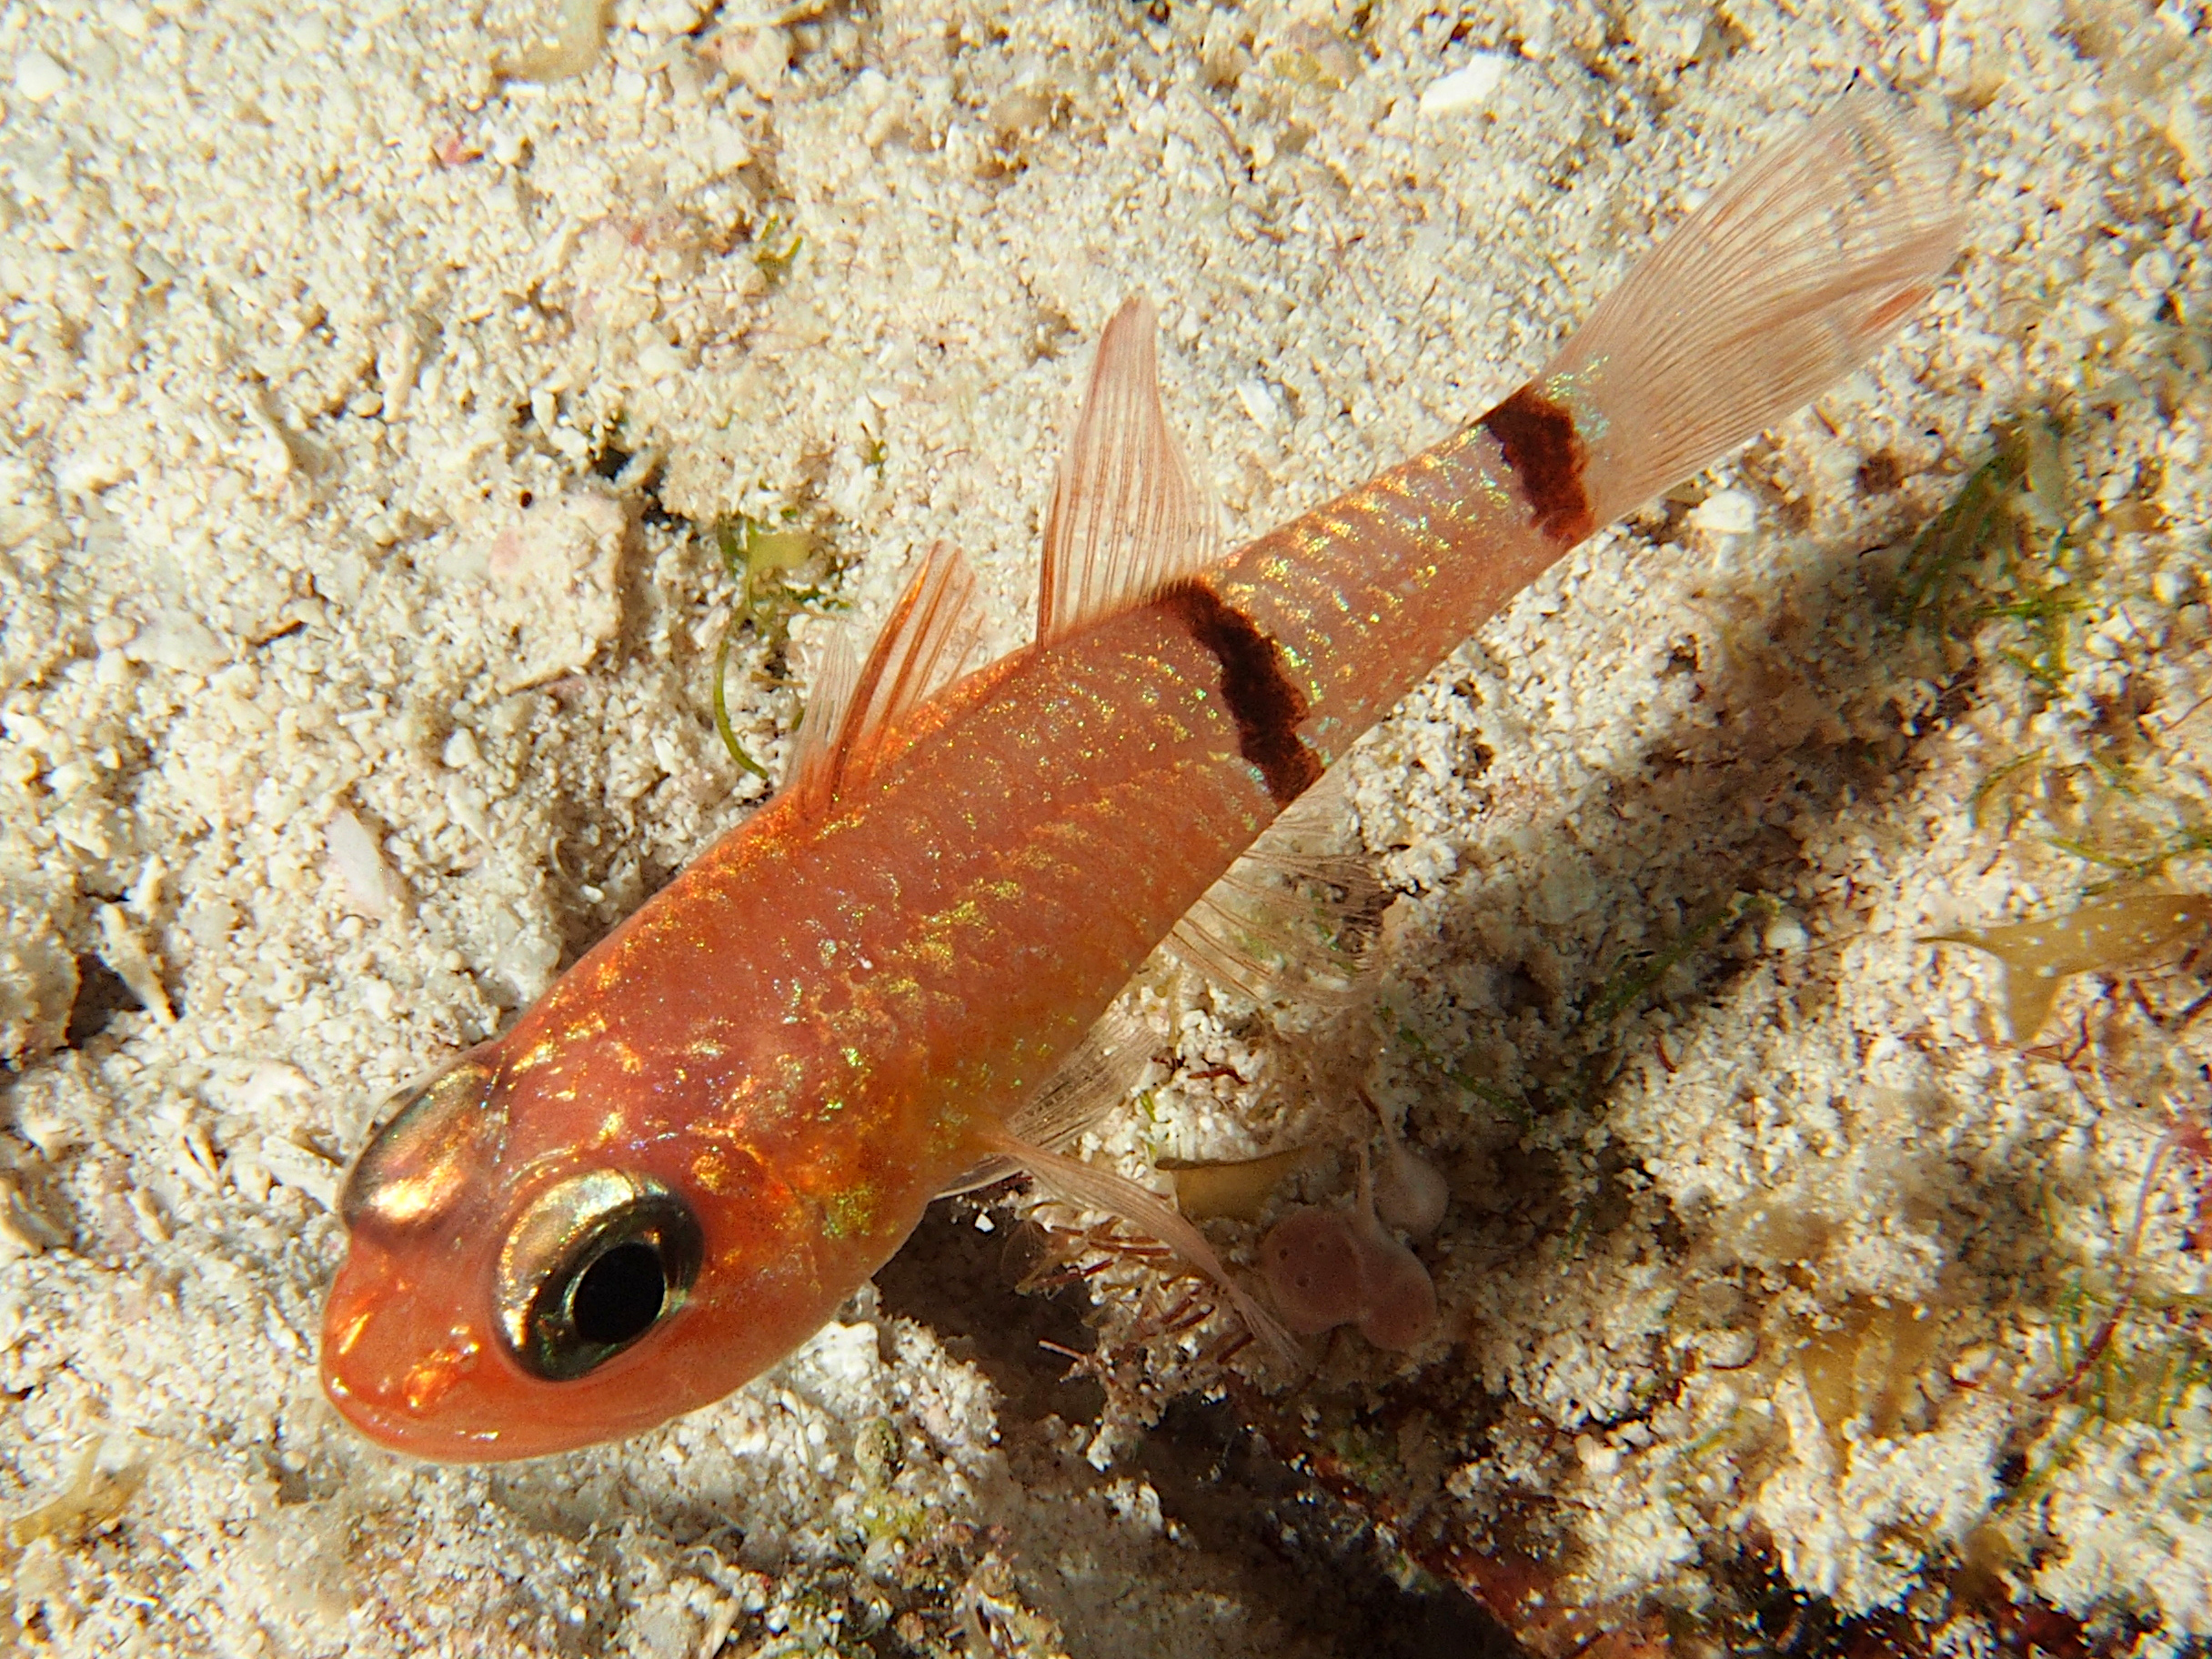 Barred Cardinalfish - Apogon binotatus